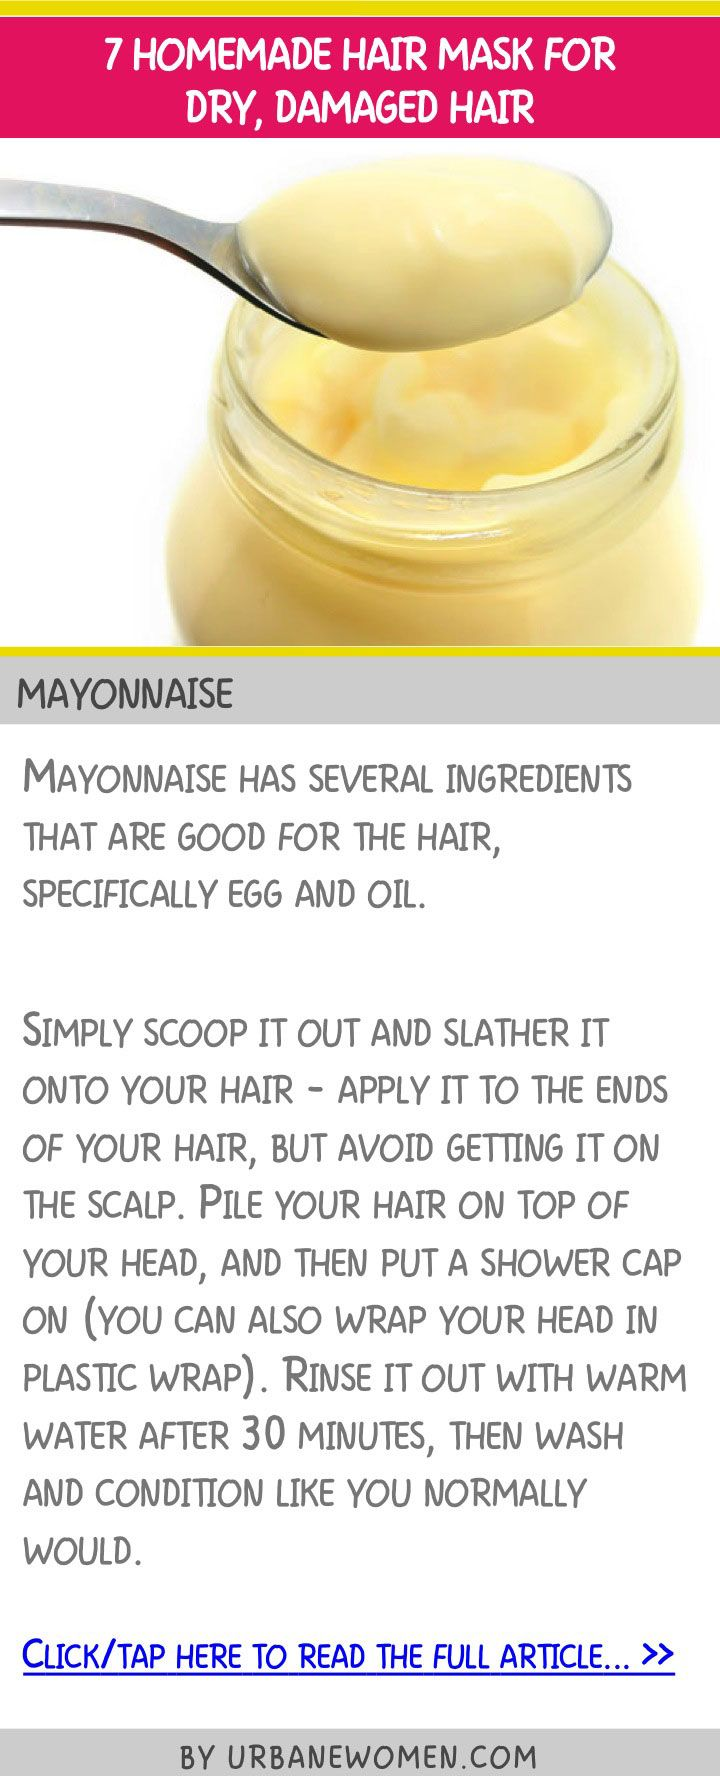 7 homemade hair mask for dry, damaged hair - Mayonnaise